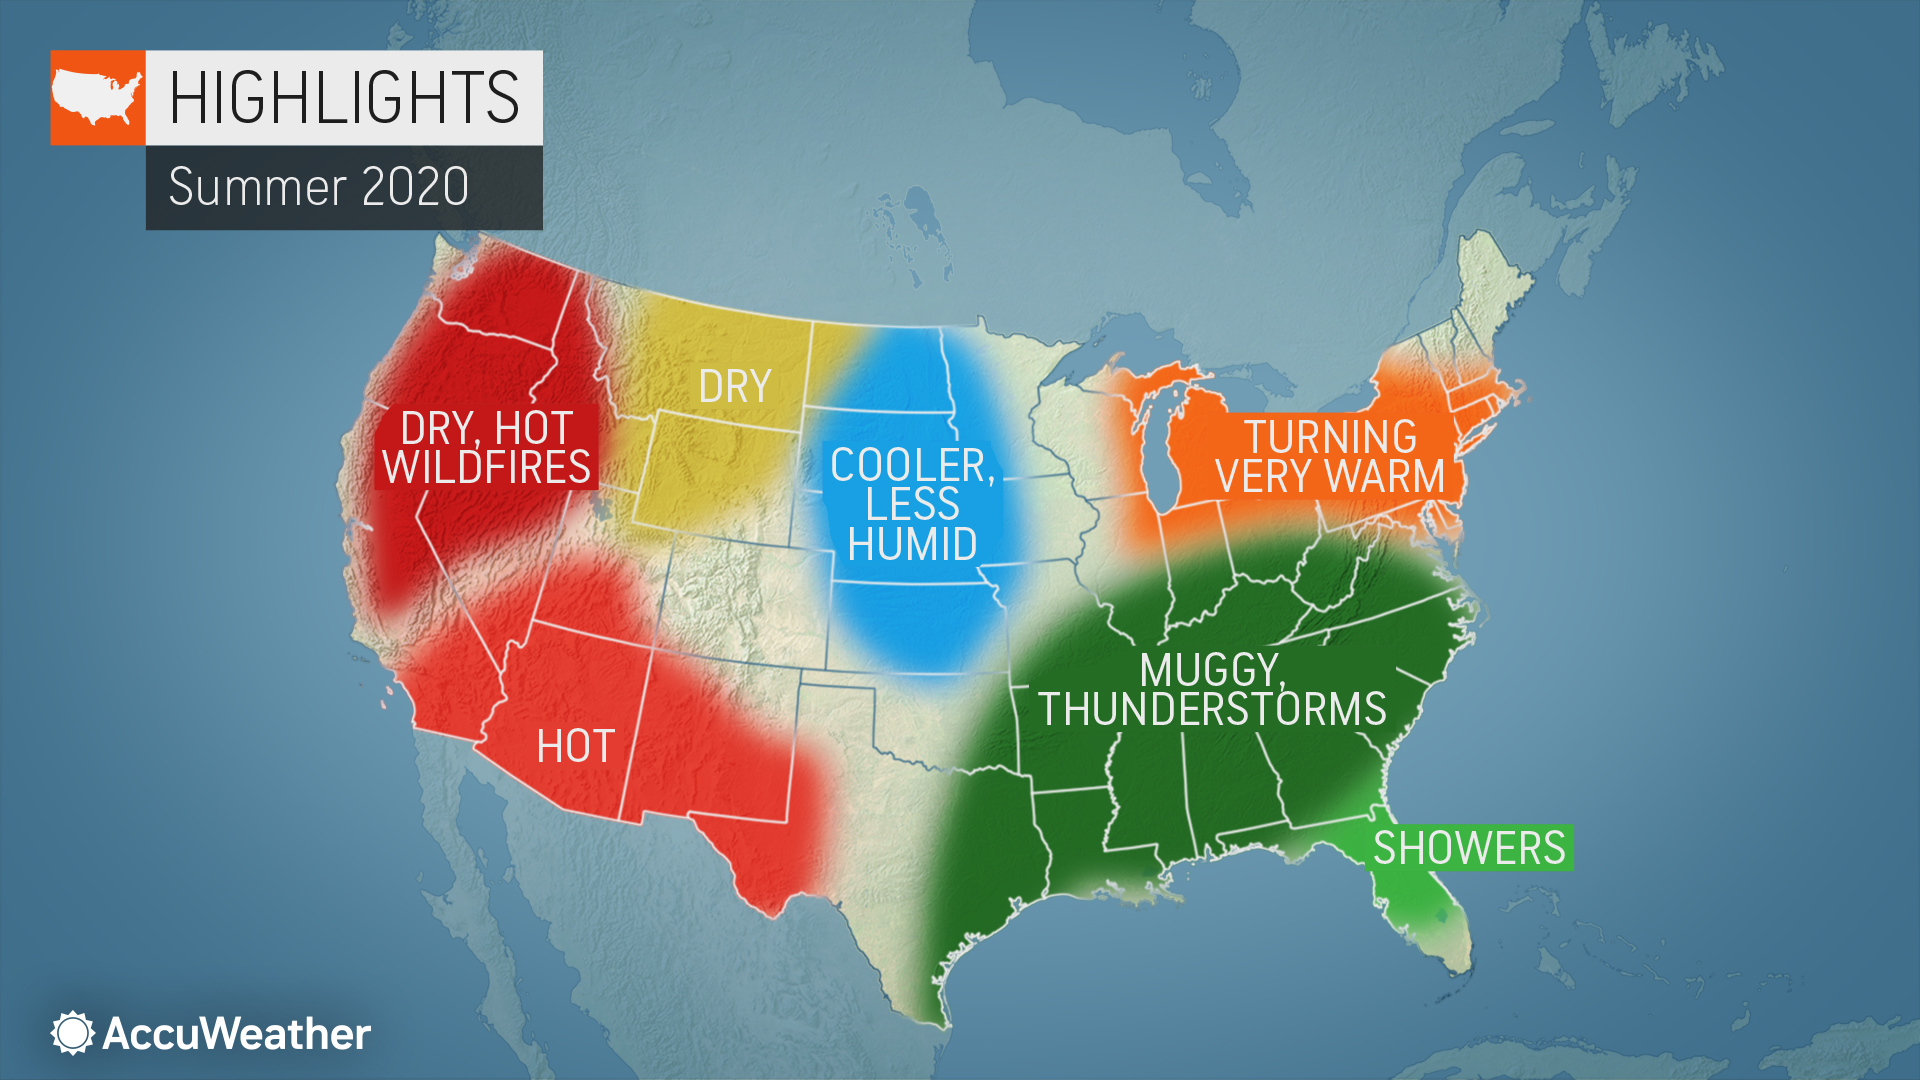 state of florida weather map Accuweather S 2020 Summer Forecast Accuweather